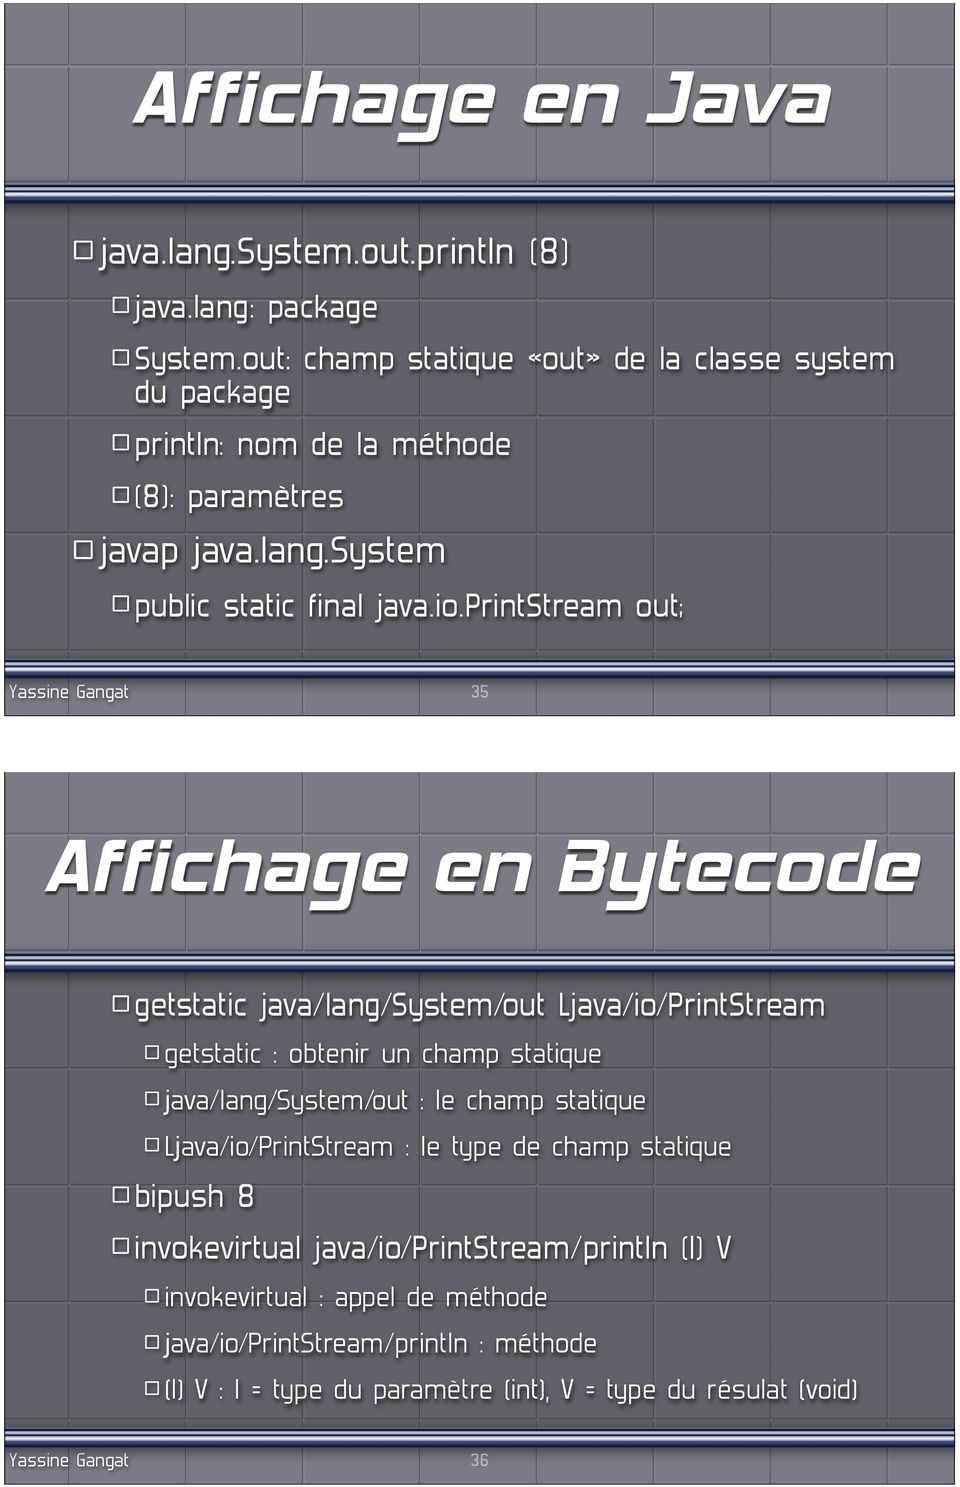 printstream out; 35 Affichage en Bytecode getstatic java/lang/system/out Ljava/io/PrintStream getstatic : obtenir un champ statique java/lang/system/out : le